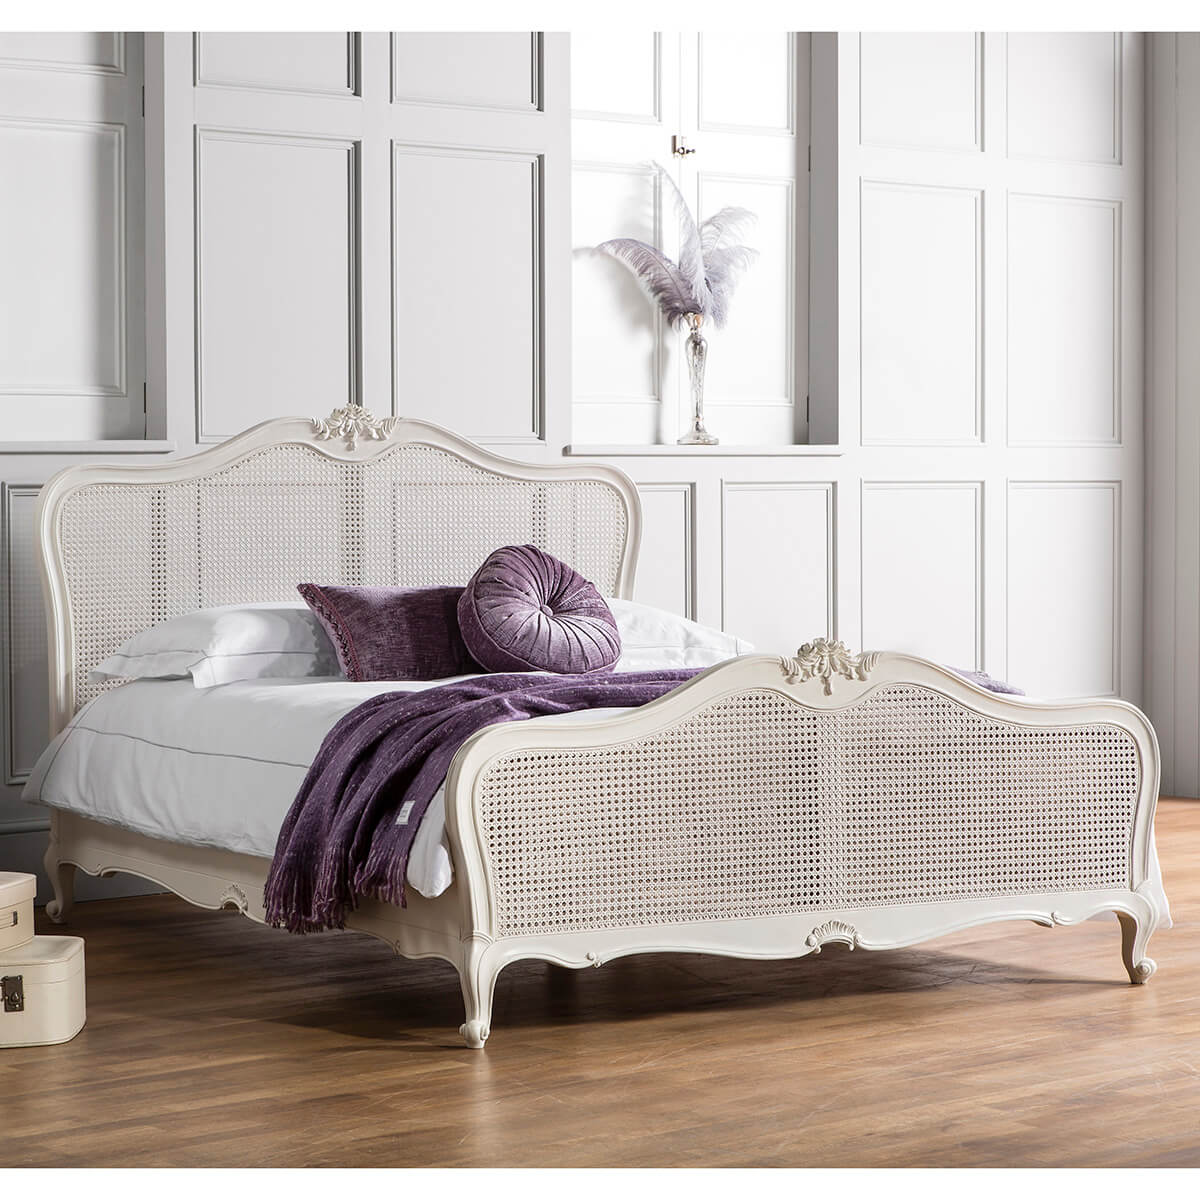 Madeleine French Rococo Style Chalk painted white bed kingsize double FADS Furniture & Design Studio cane panels